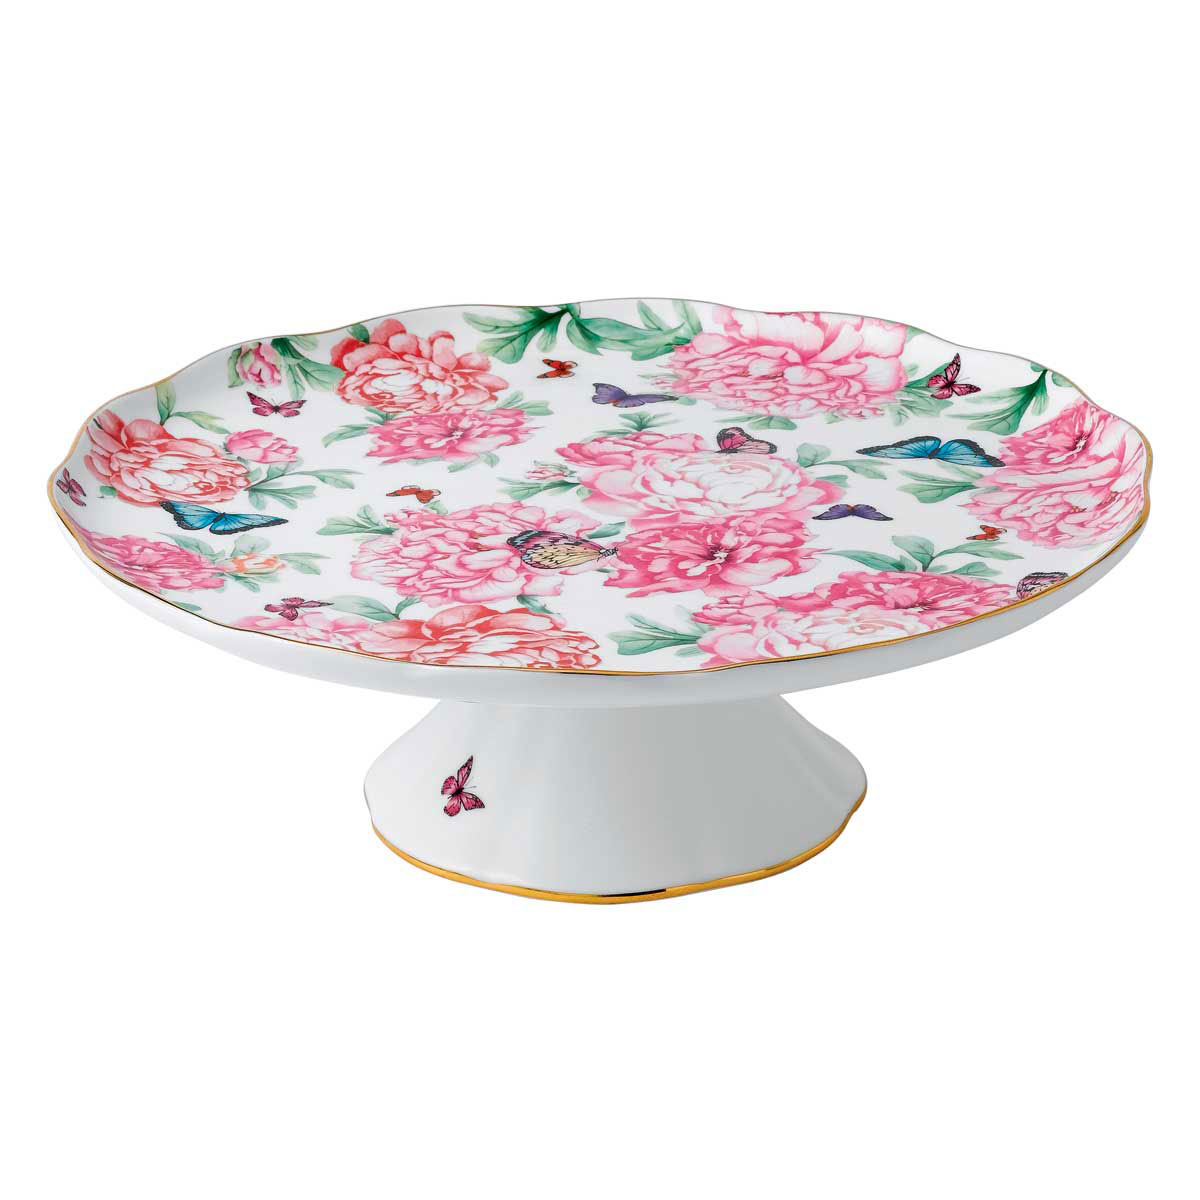 Miranda Kerr For Royal Albert Gratitude Cake Stand, Large